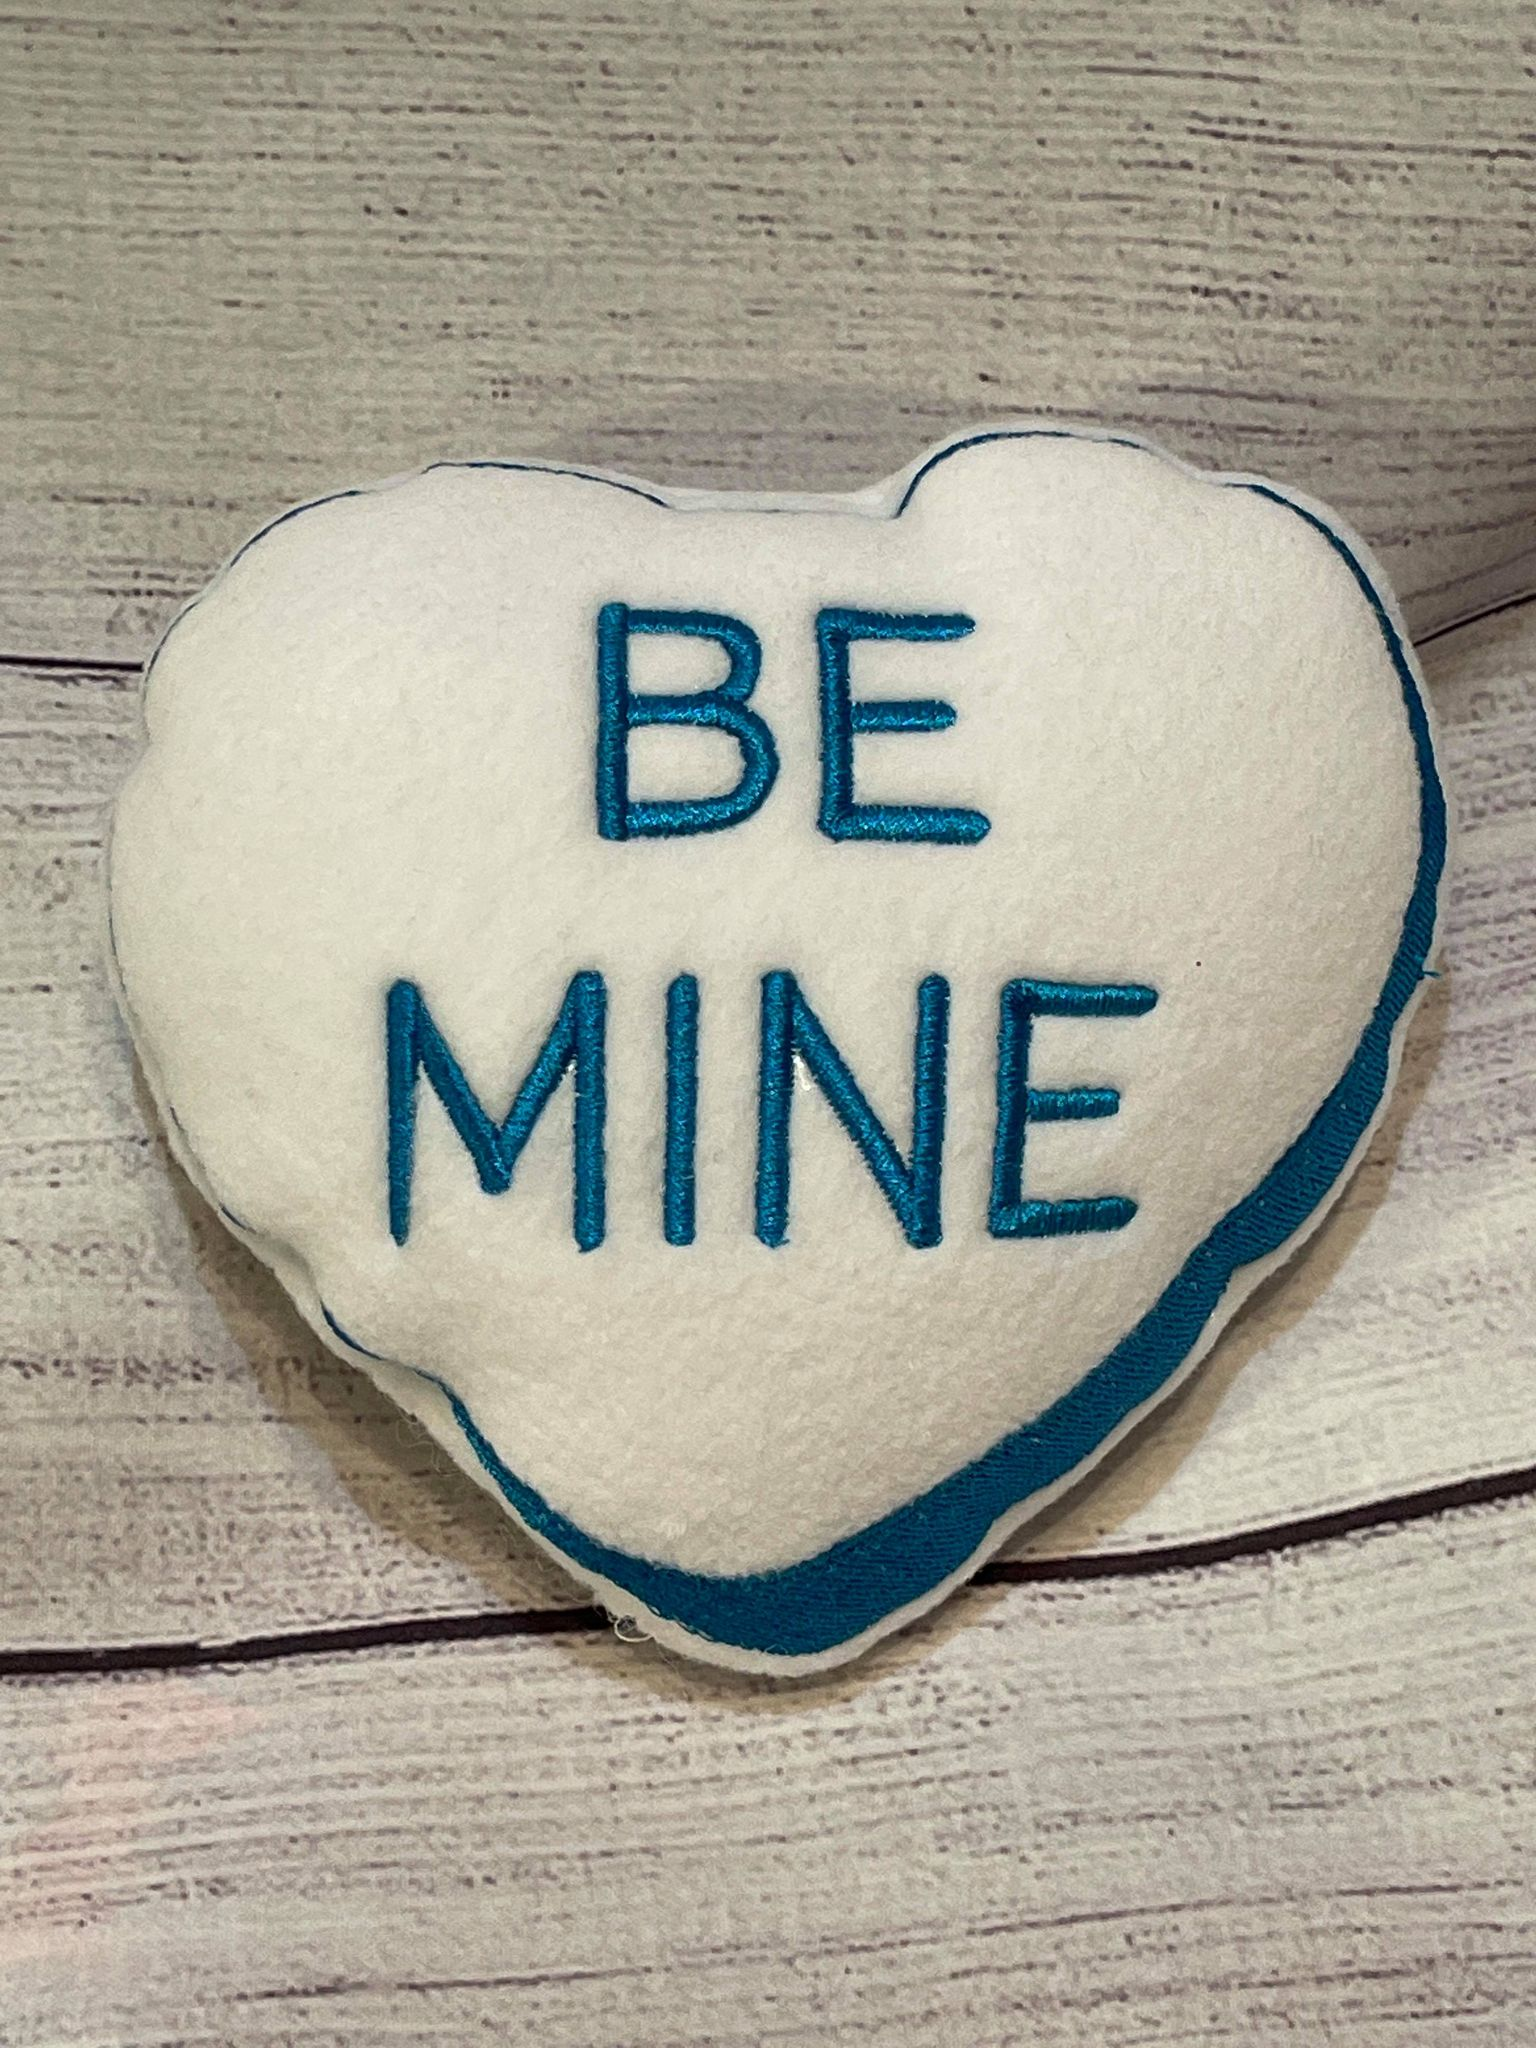 Be Mine Heart Stuffie Embroidery Design (8x12)